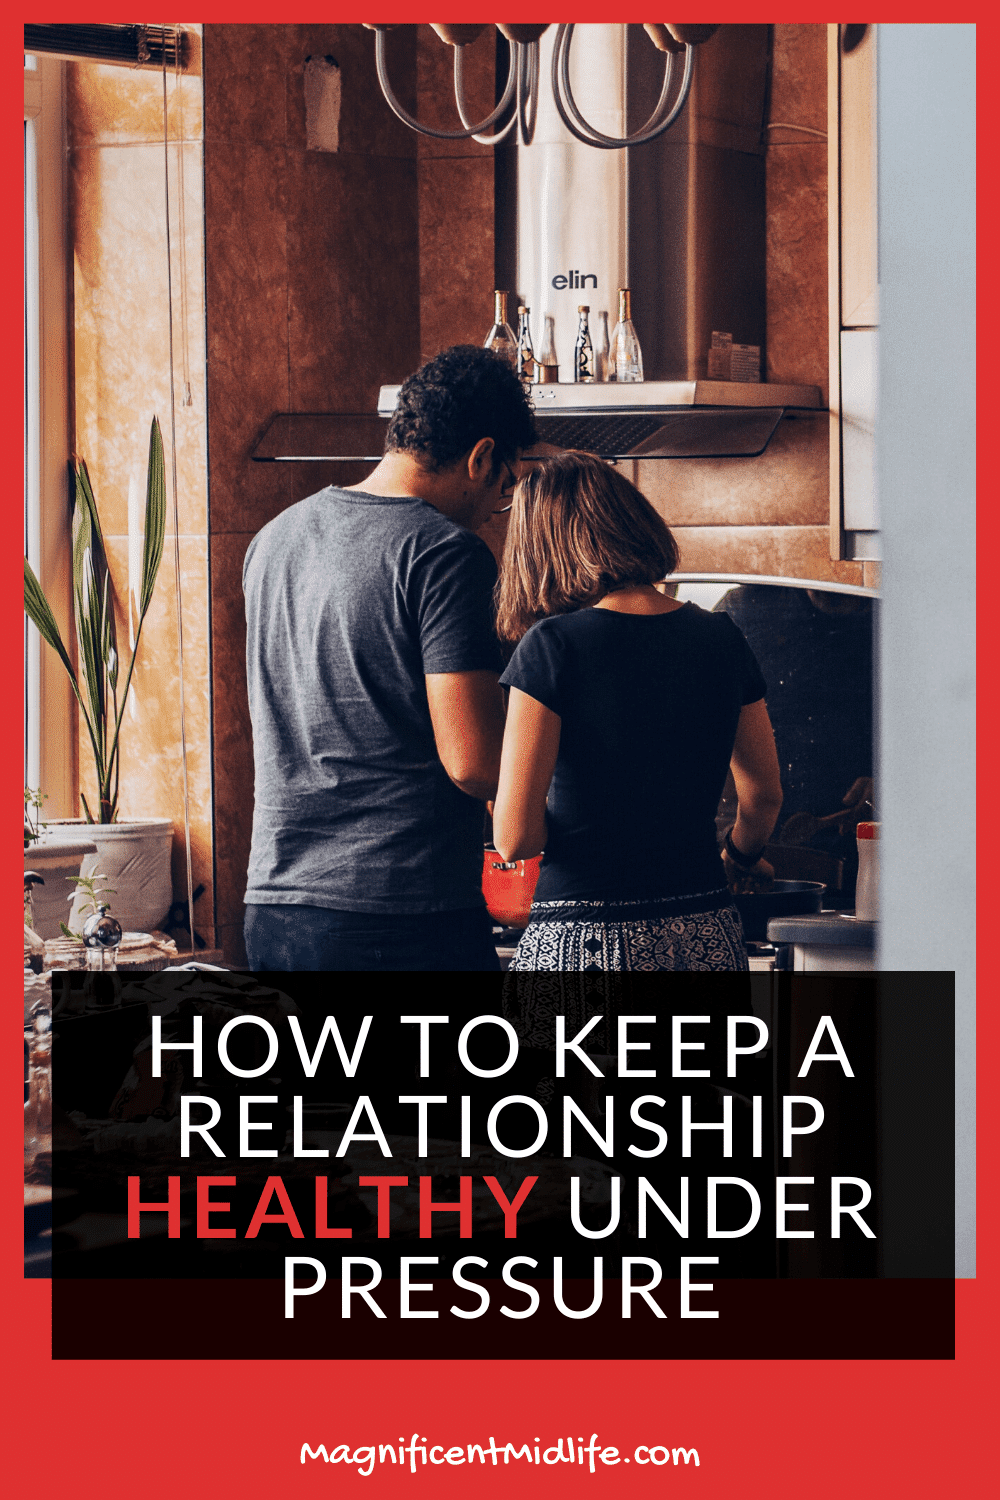 How to keep a relationship healthy under pressure